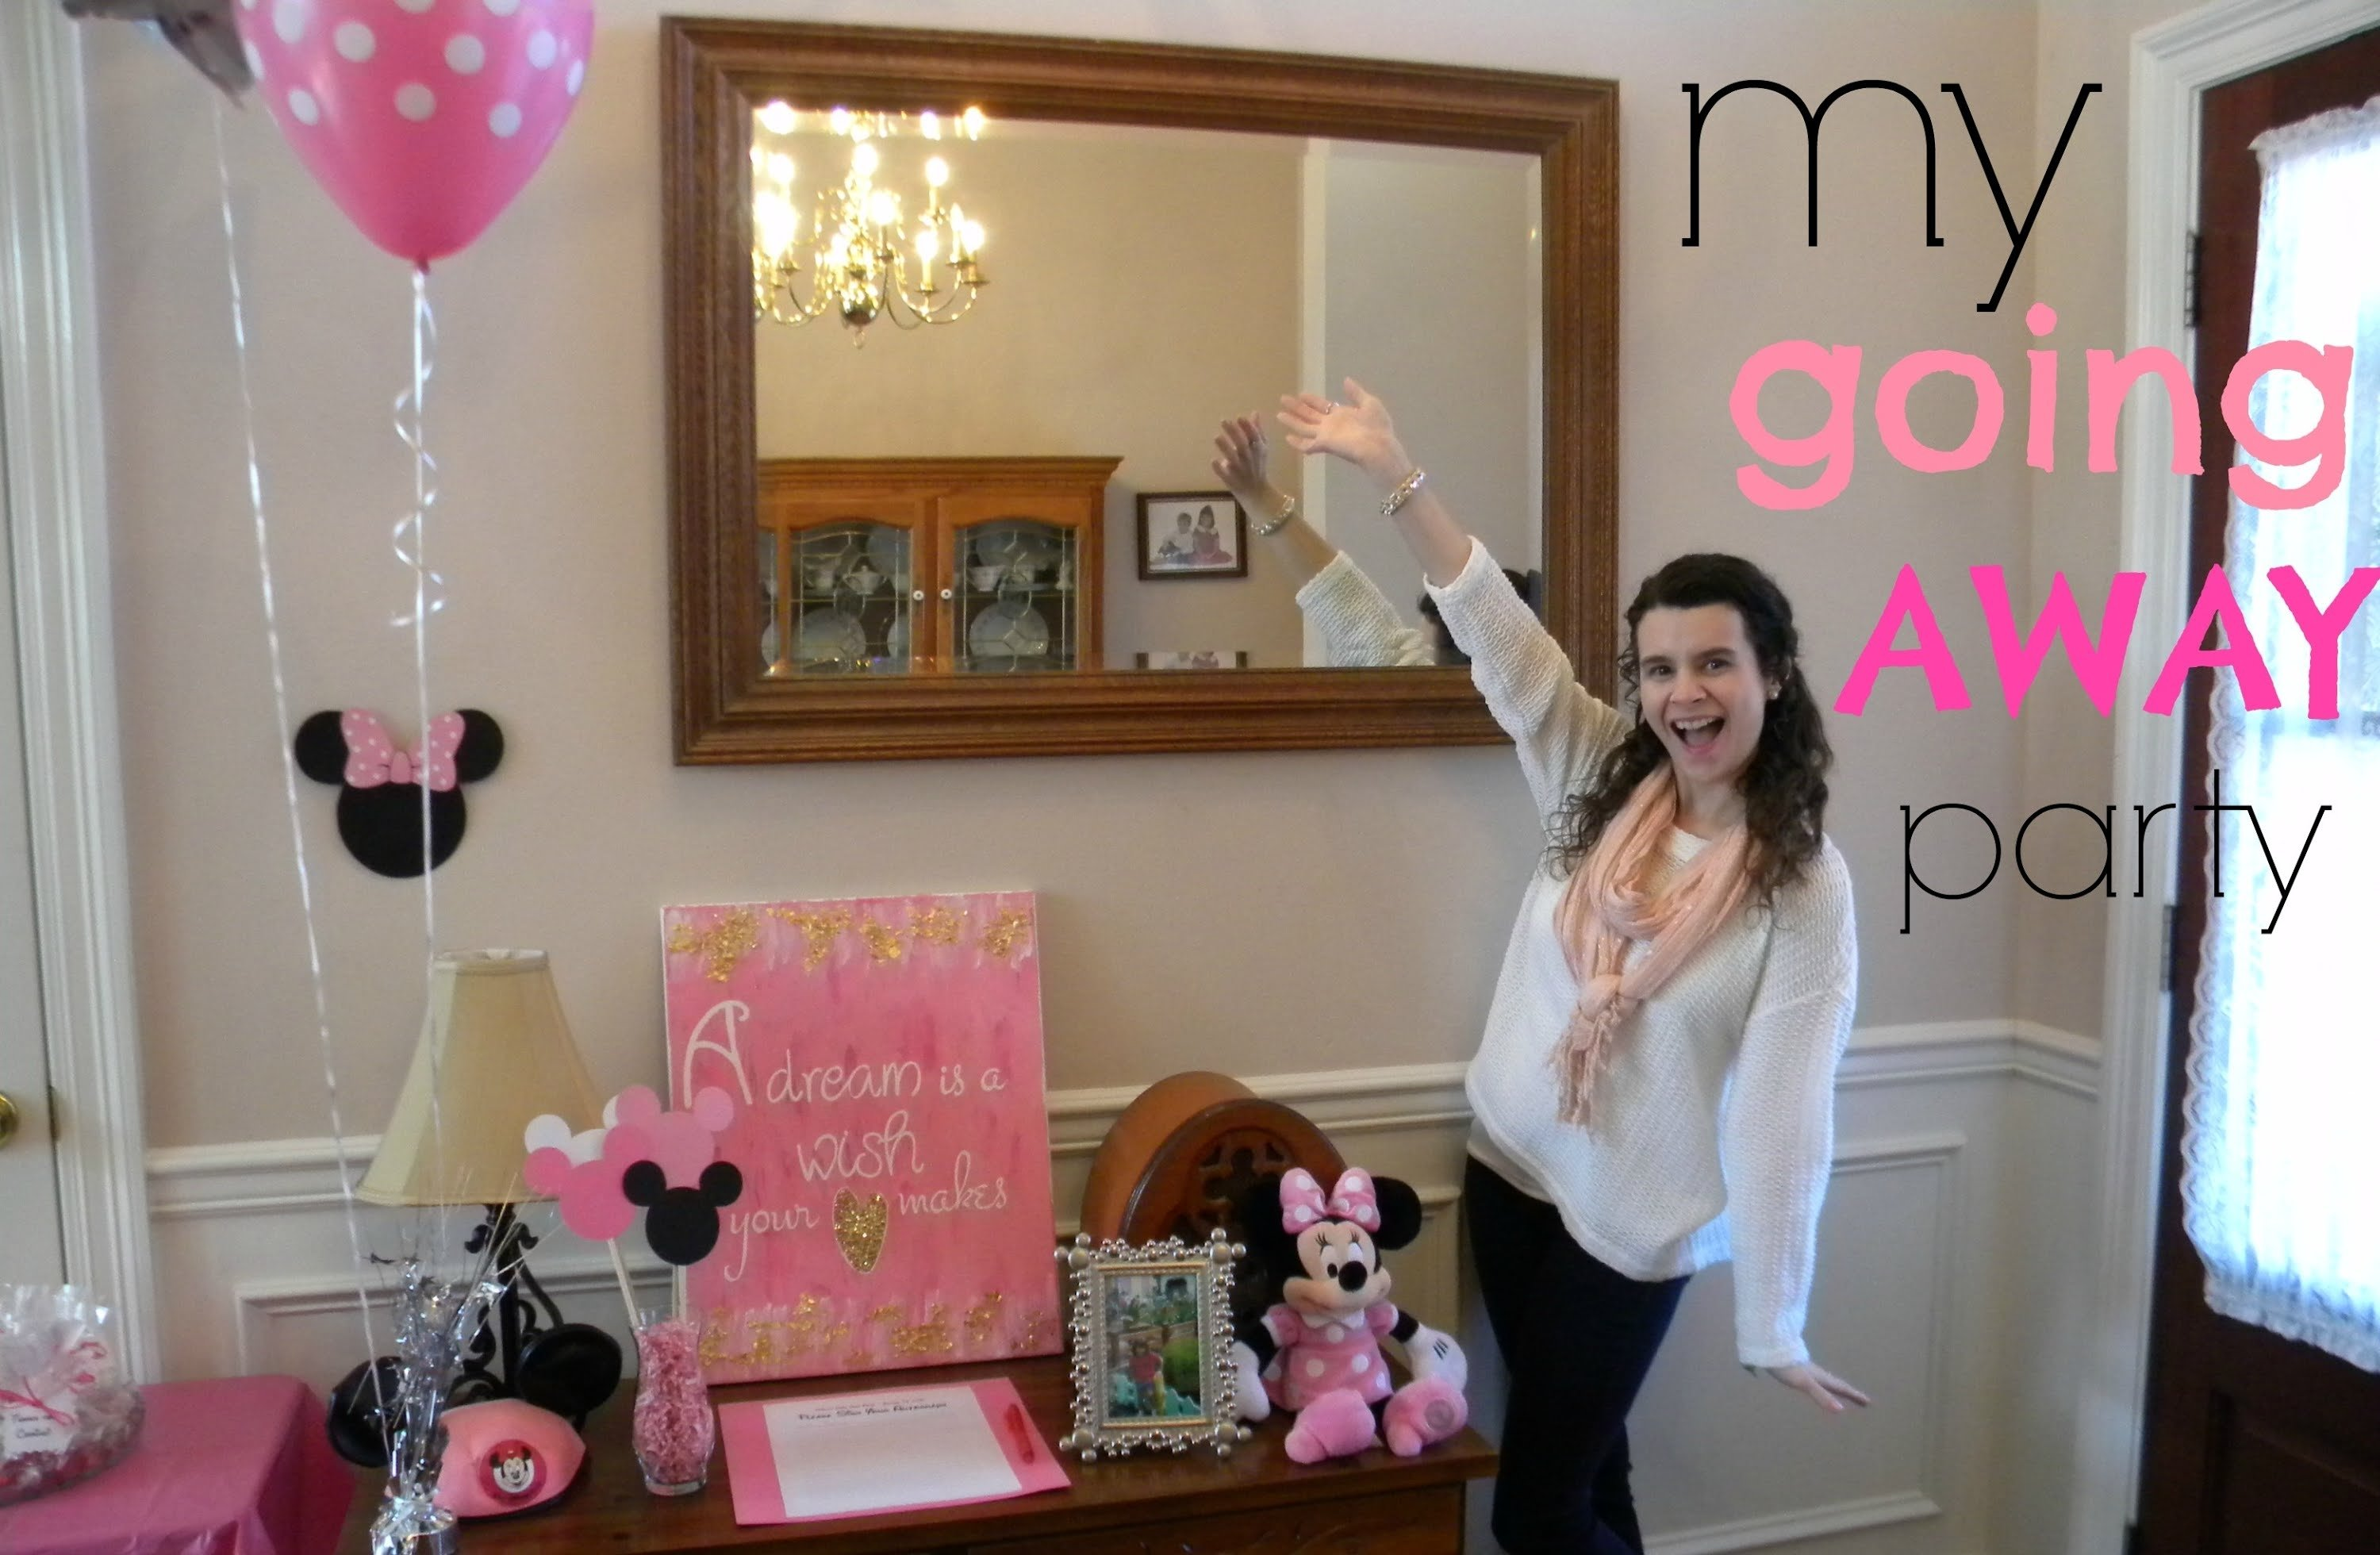 10 Pretty College Send Off Party Ideas disney college program spring advantage 2015 my going away party 1 2021